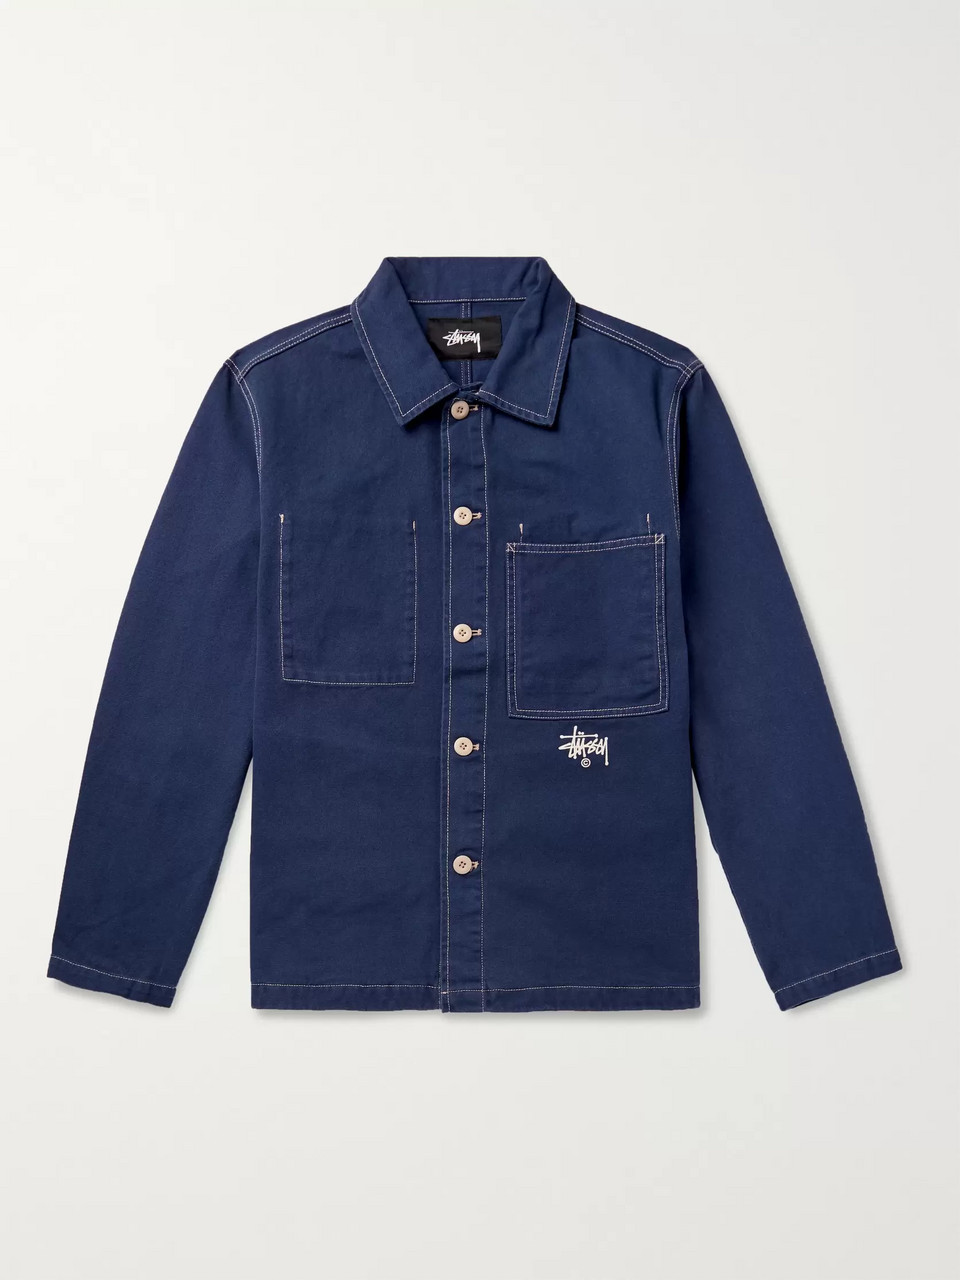 Stüssy Denim Shirt Jacket